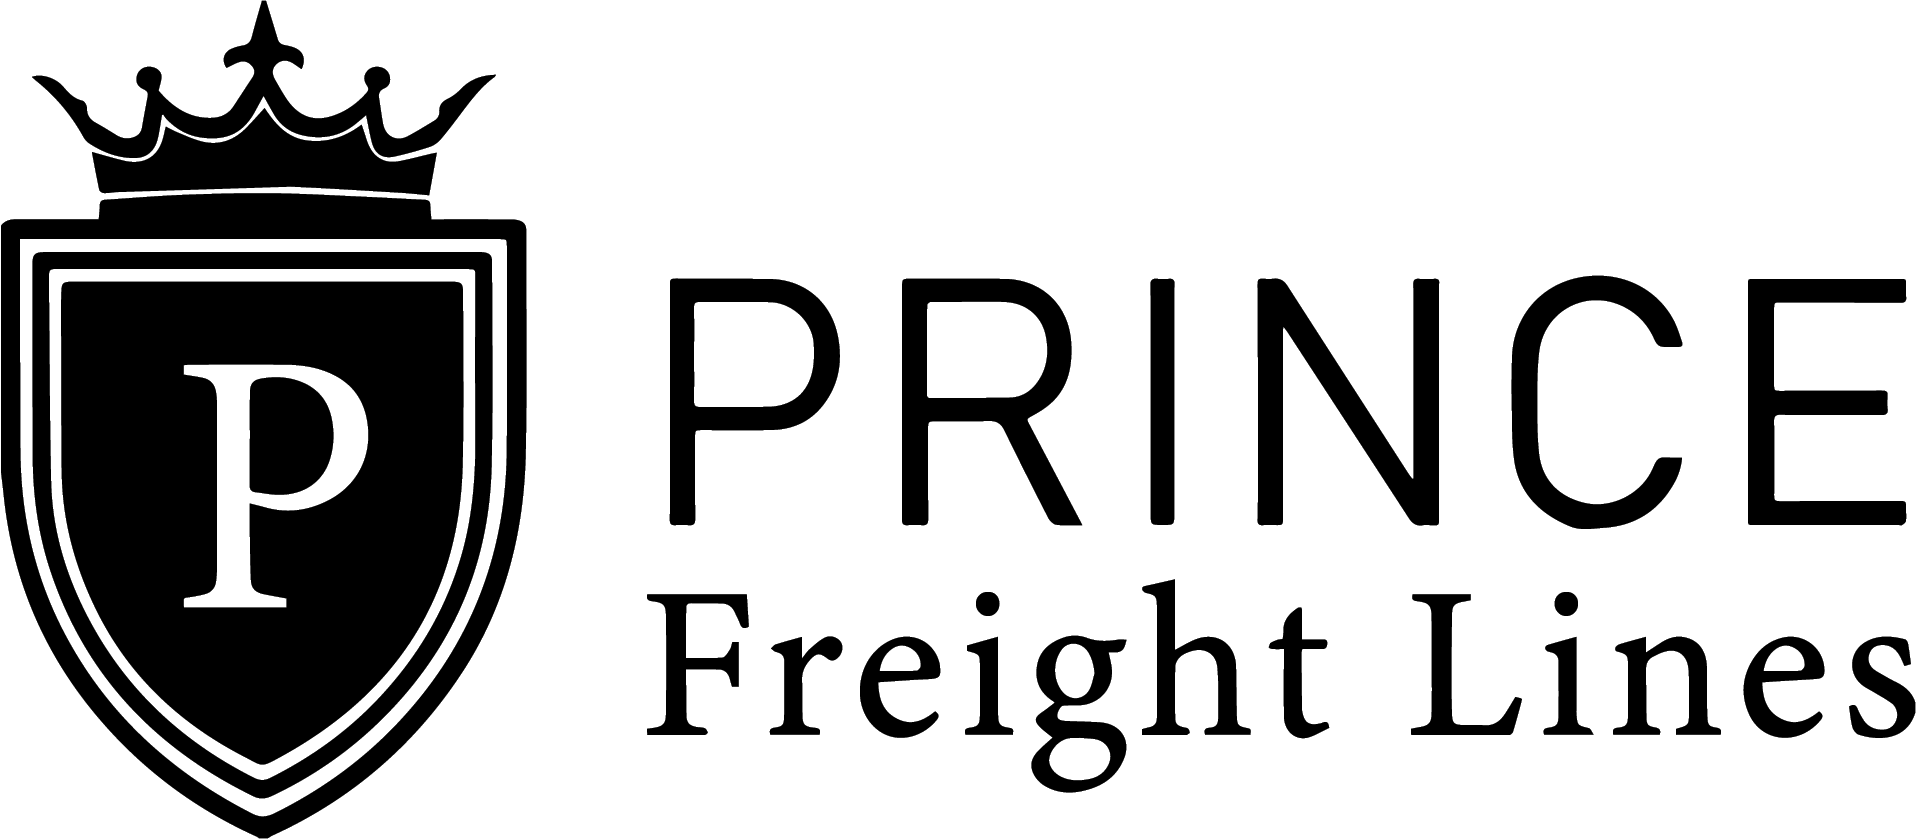 Prince Freight Lines Ltd